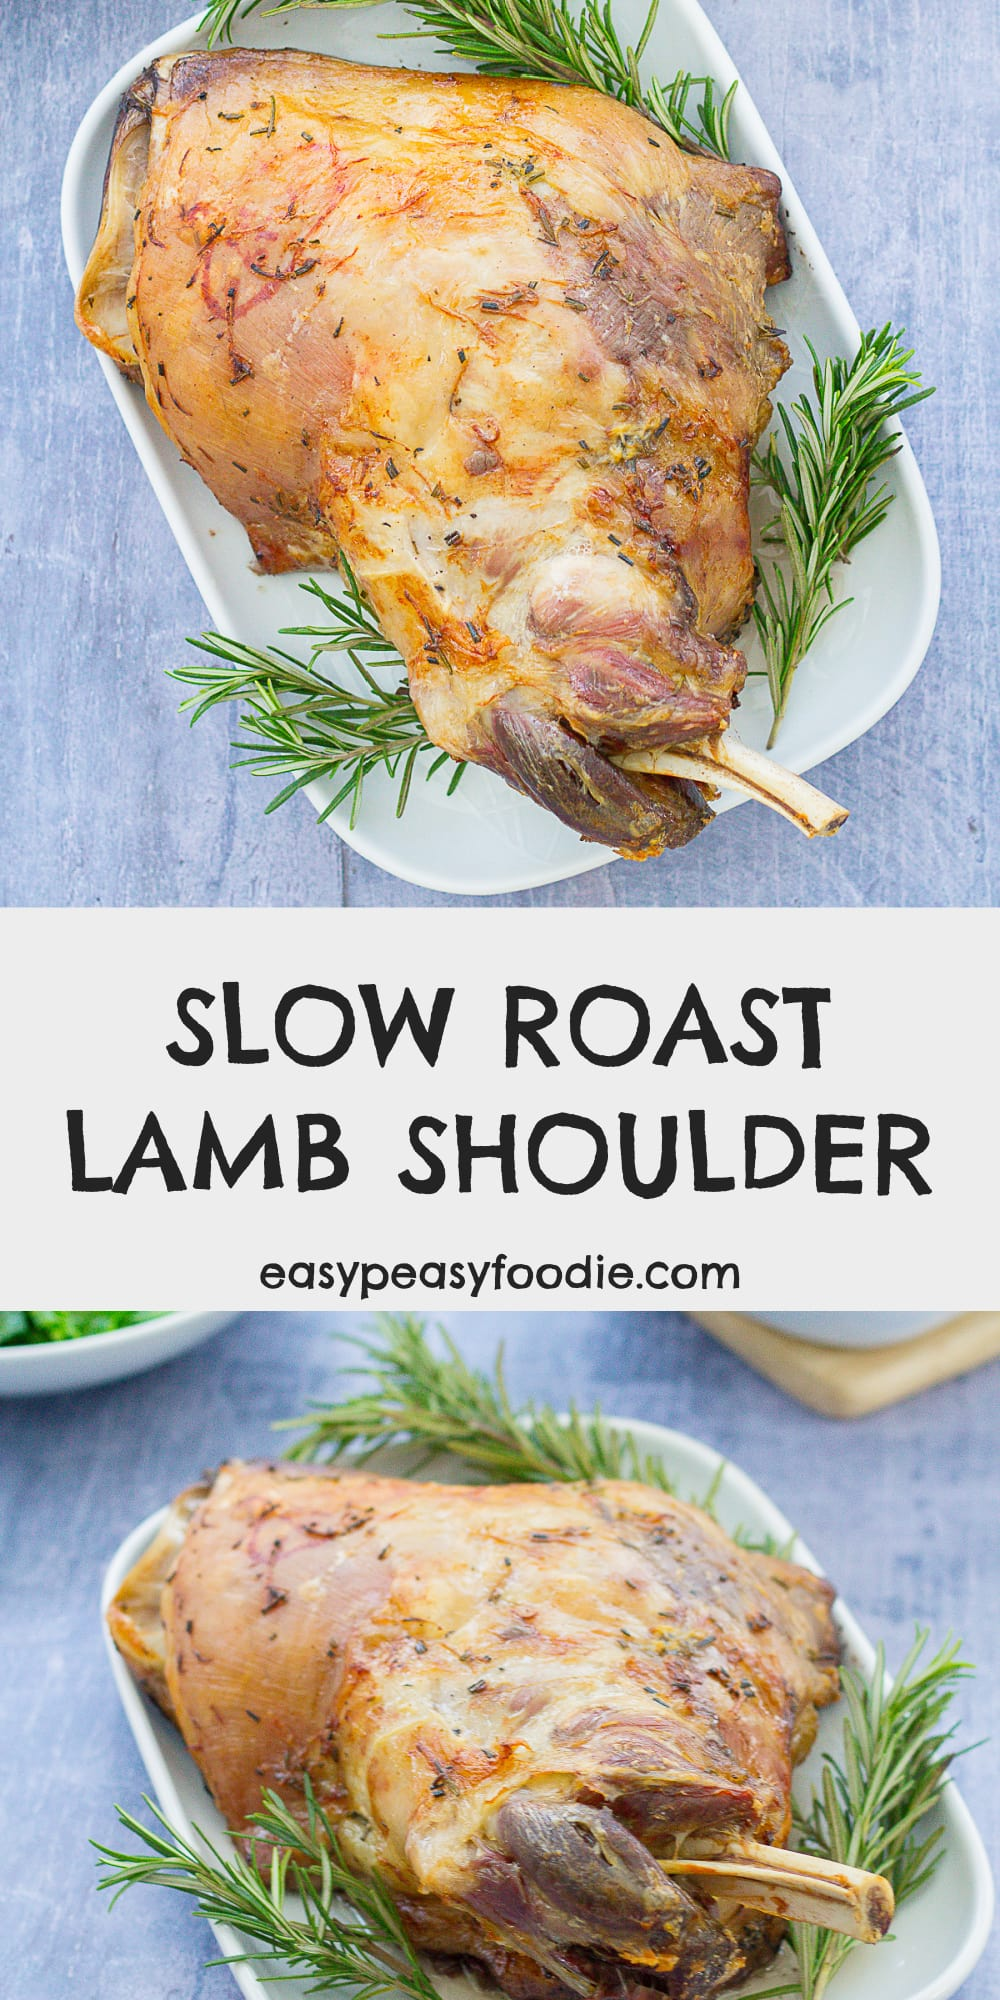 Slow Roast Lamb Shoulder with Garlic and Rosemary - pinnable image for Pinterest